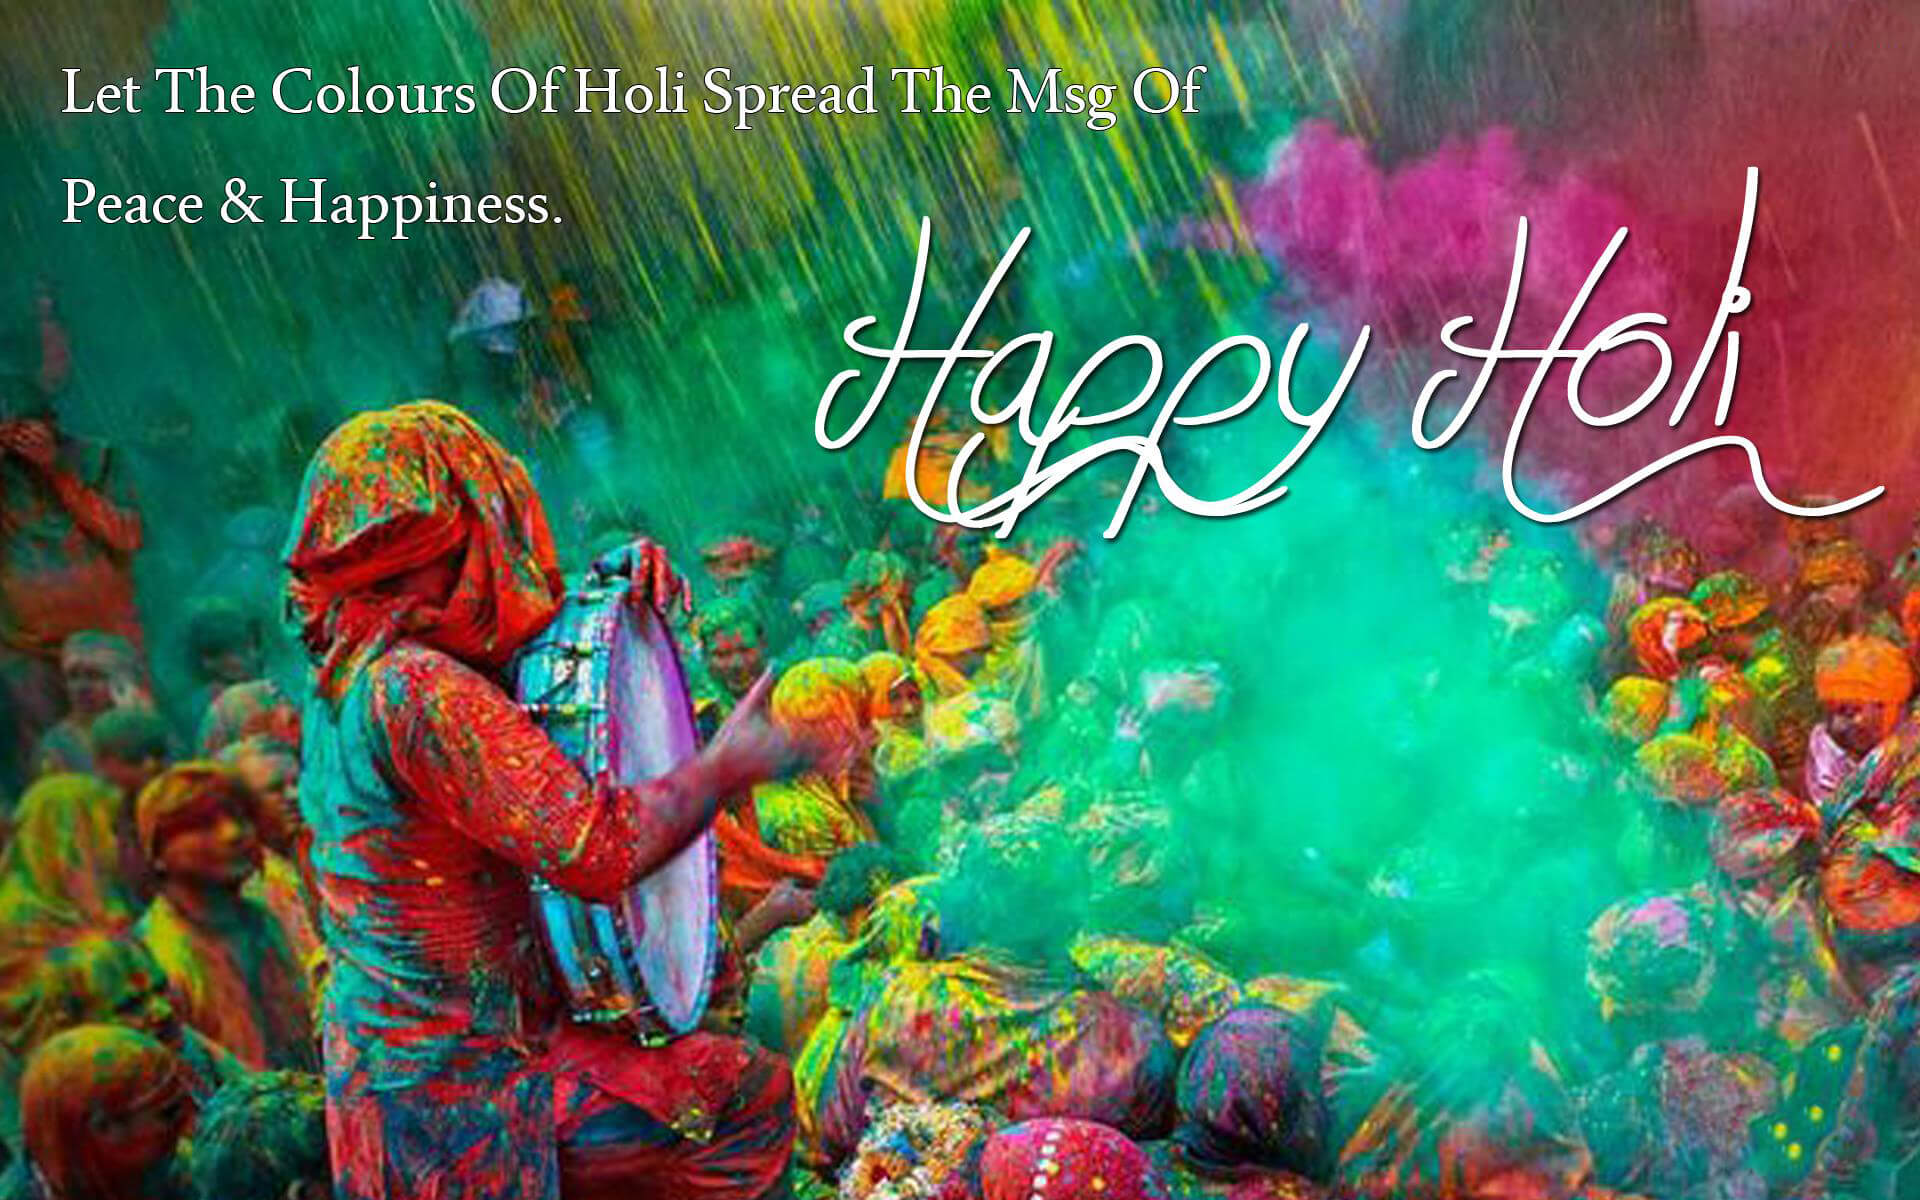 Happy Holi 2019 Images Wallpapers Hd Wishes Sms Messages